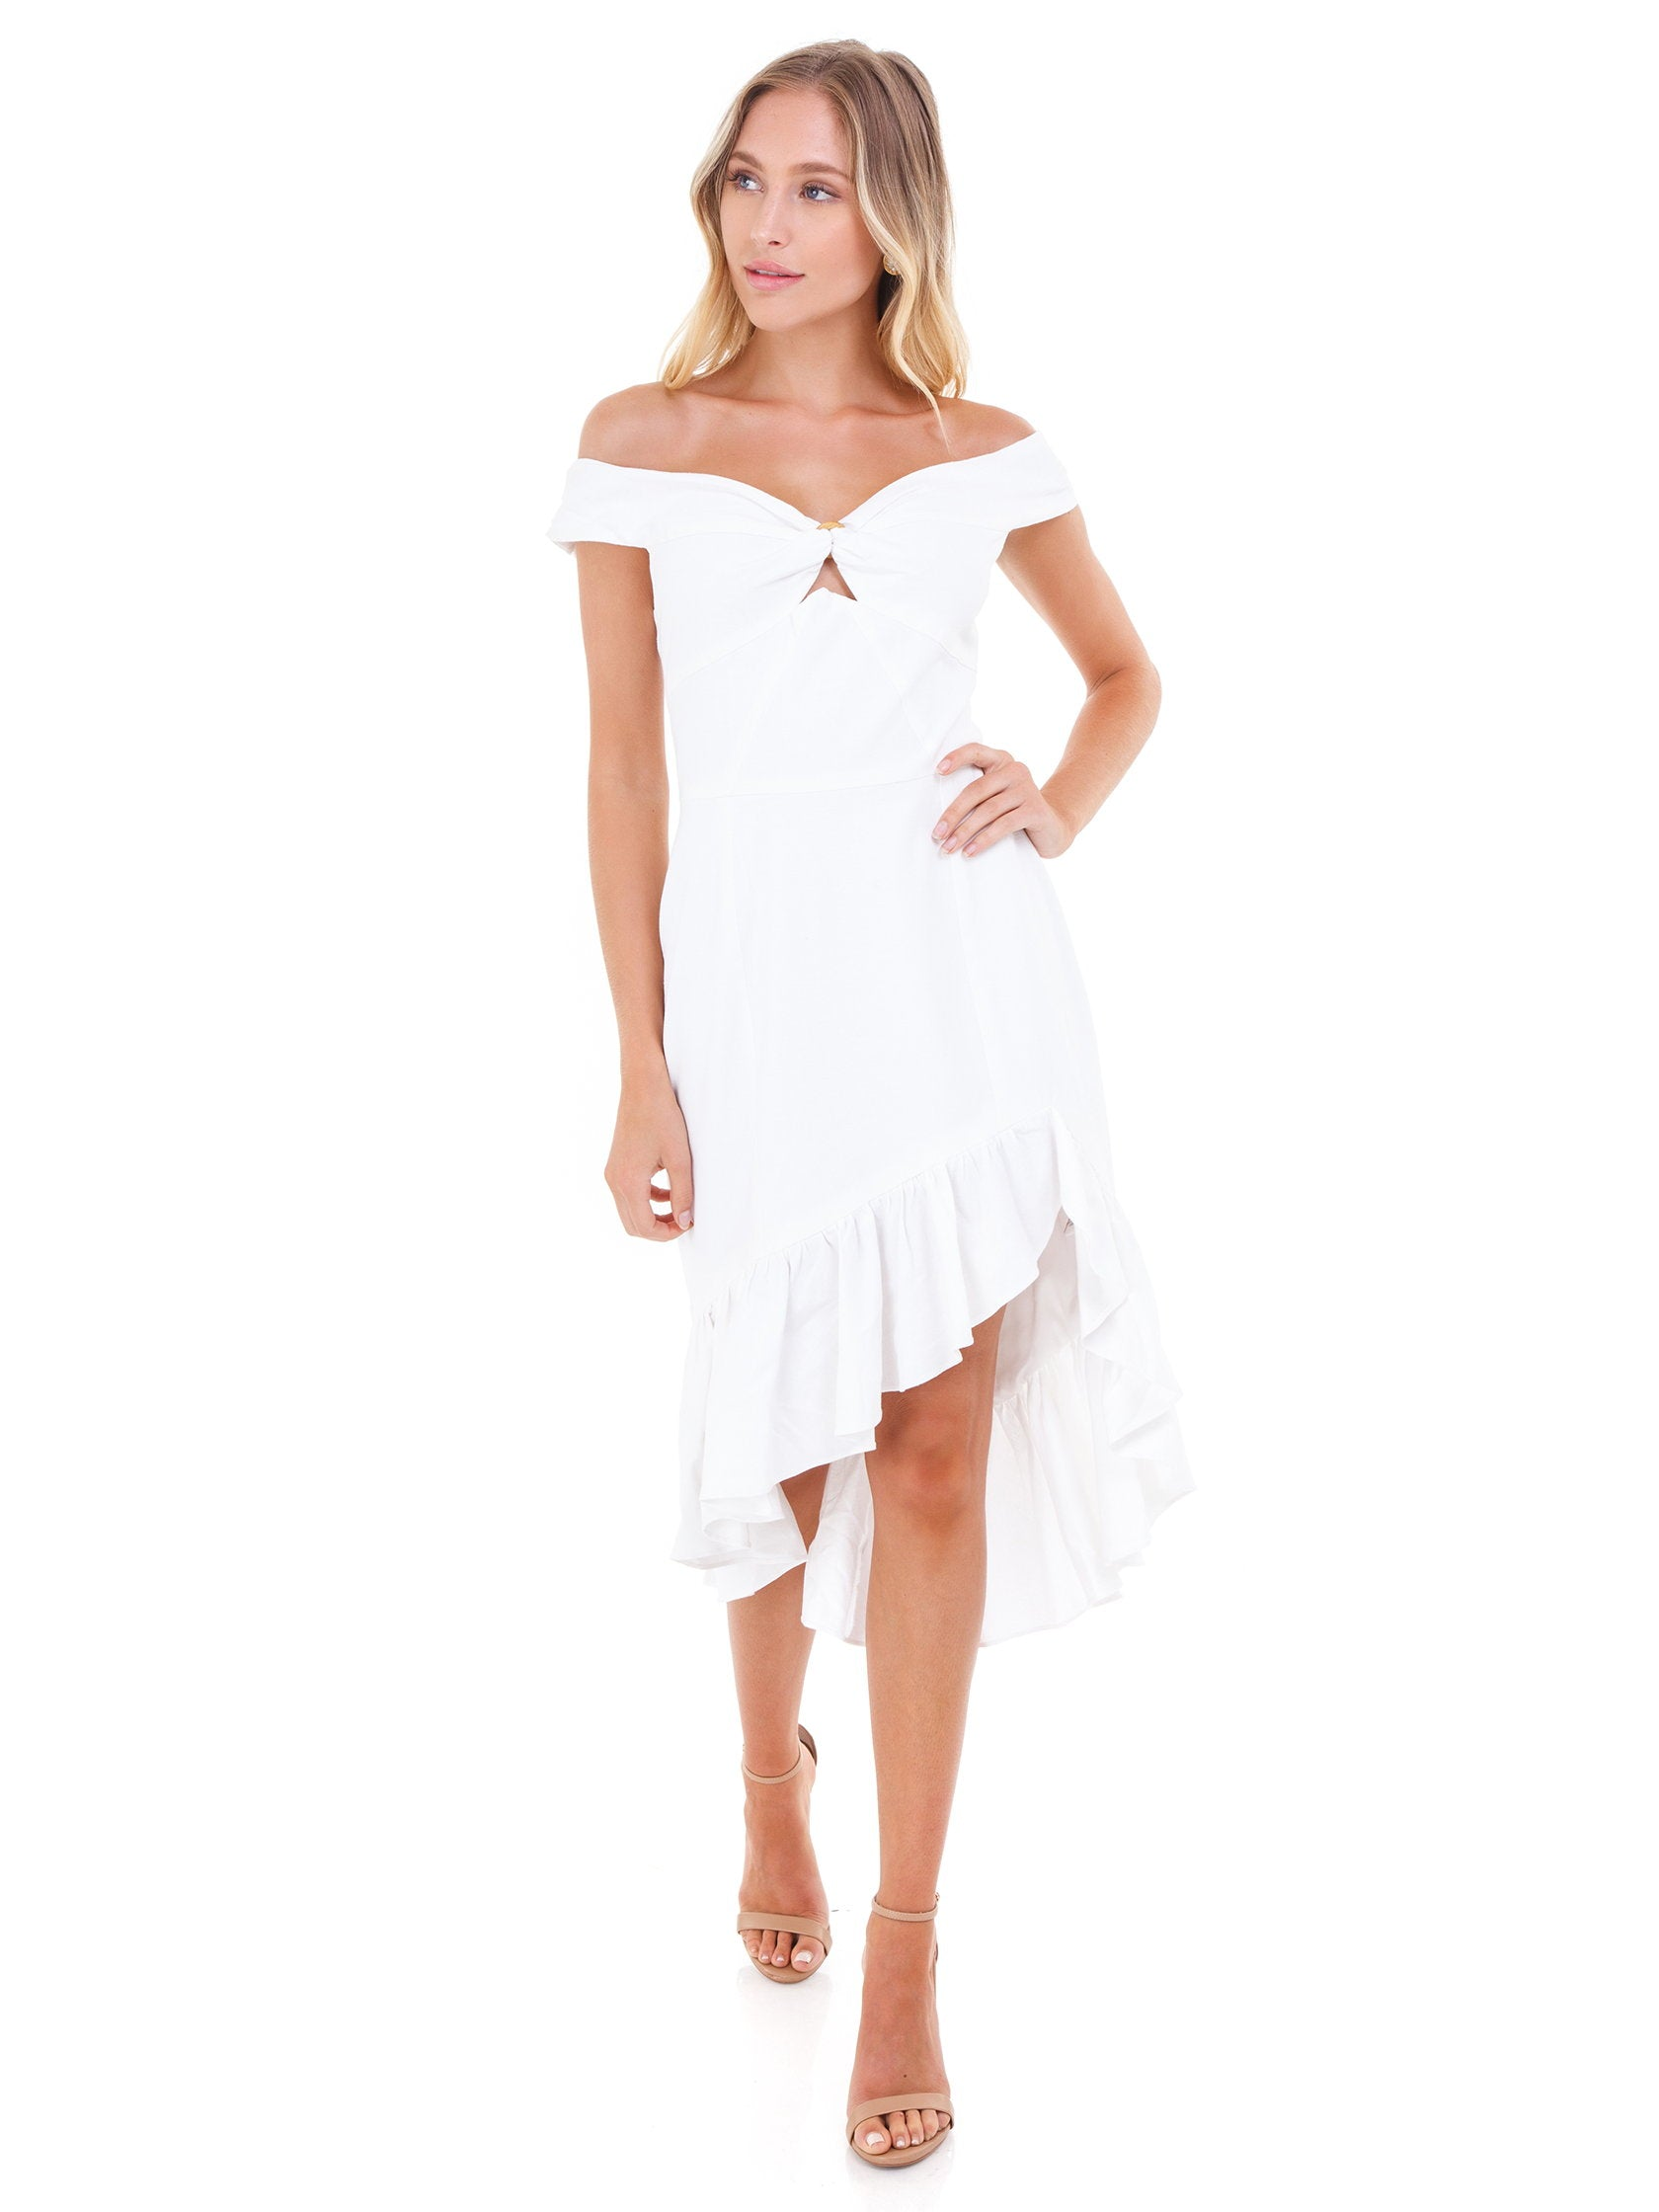 Girl outfit in a dress rental from WAYF called Genoa Off The Shoulder Dress